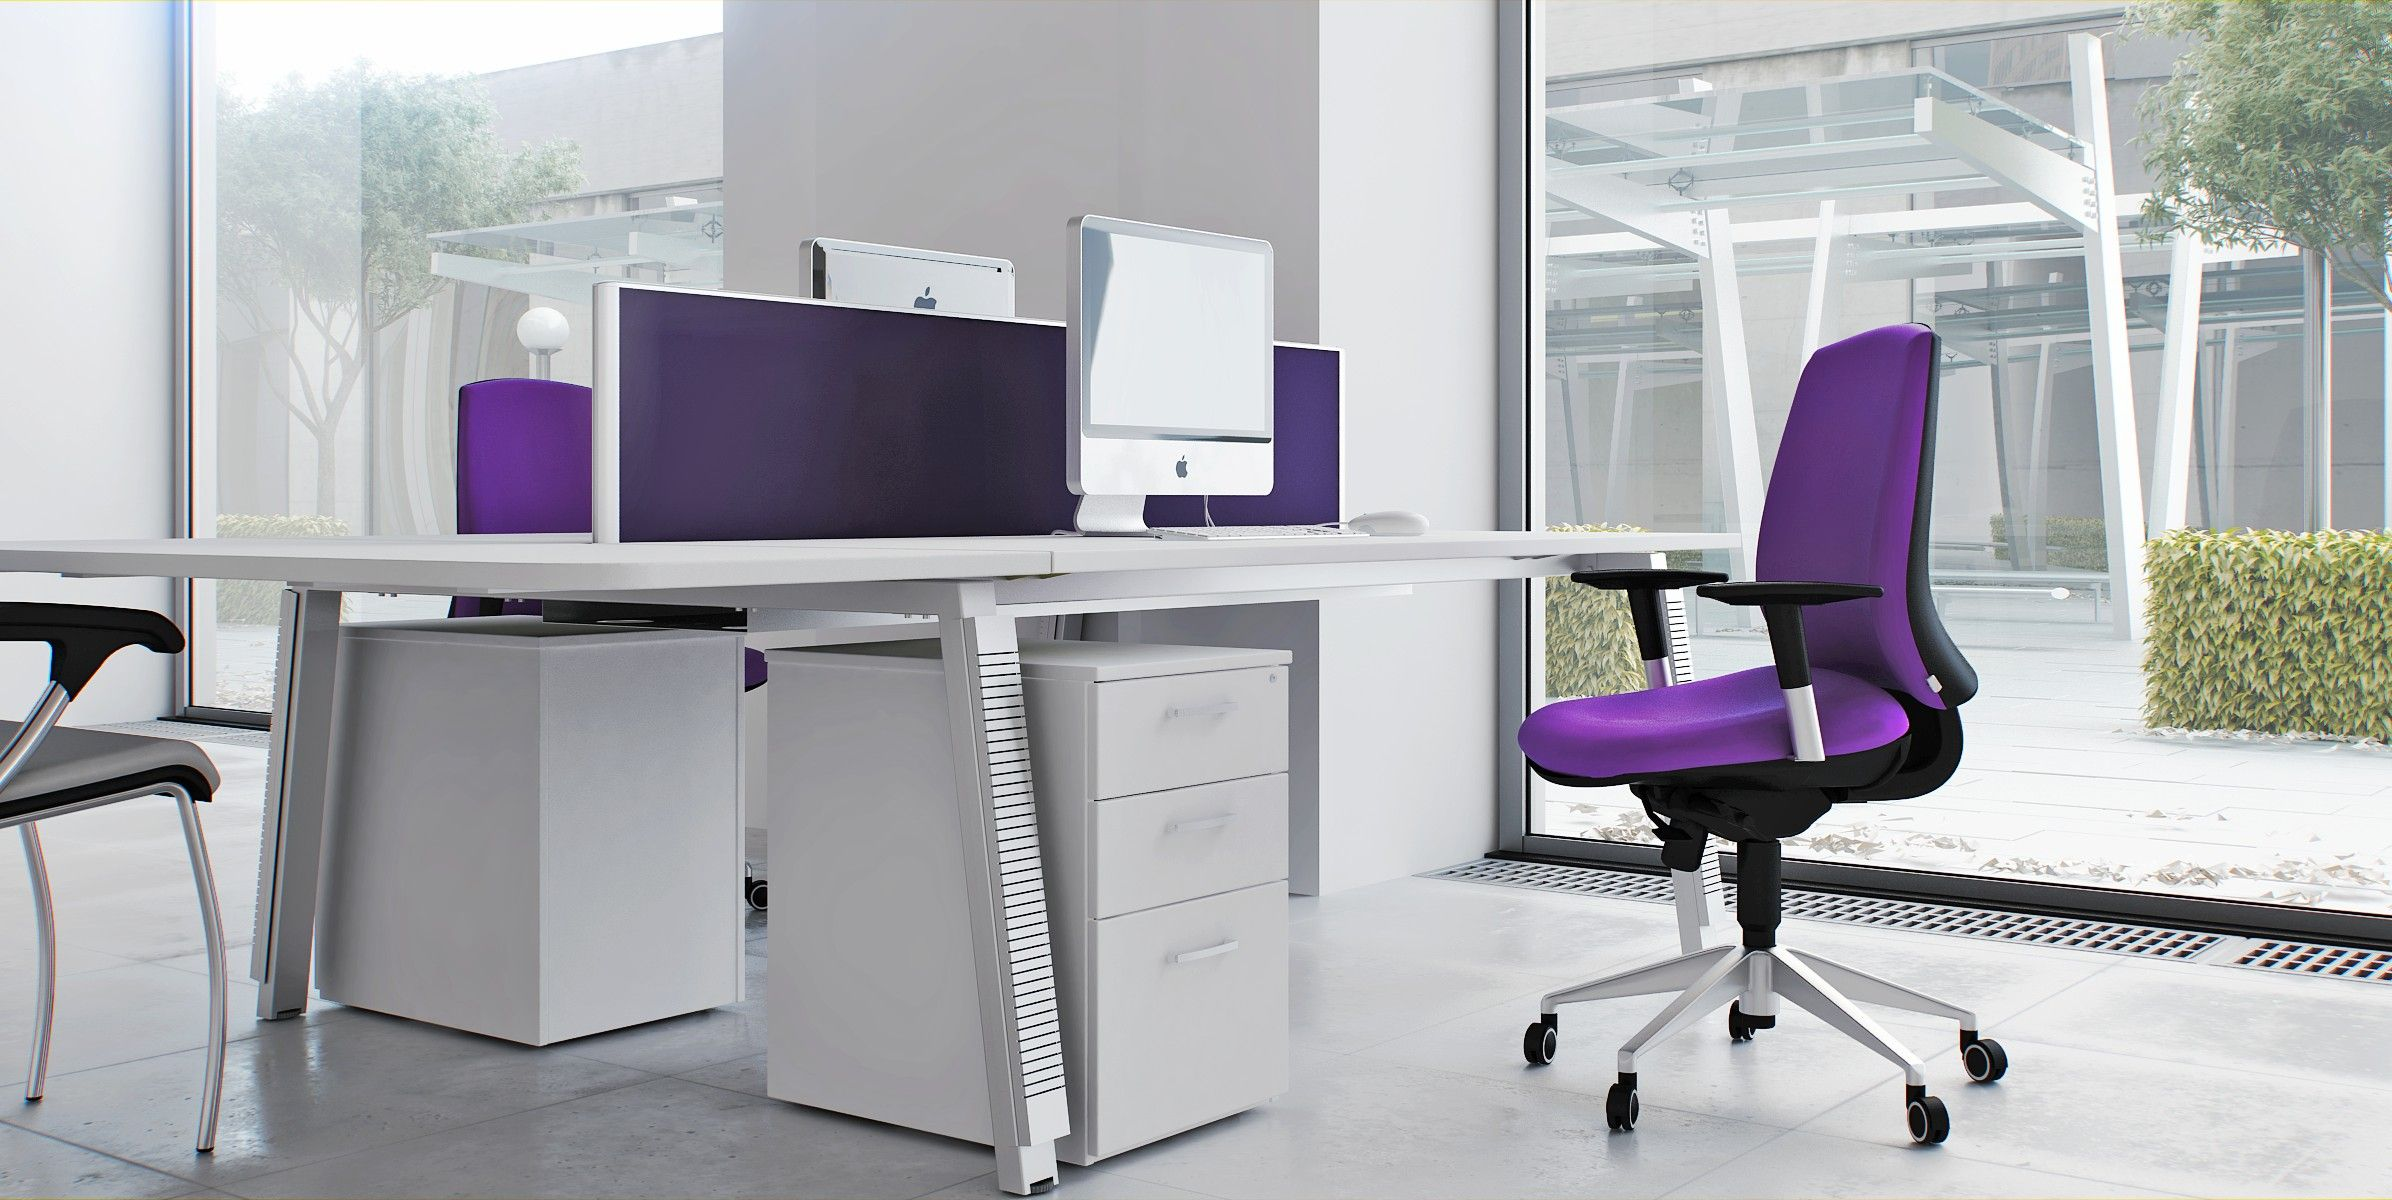 Captivating Modern Office Chair With Soft Purple Fabric Mixed With